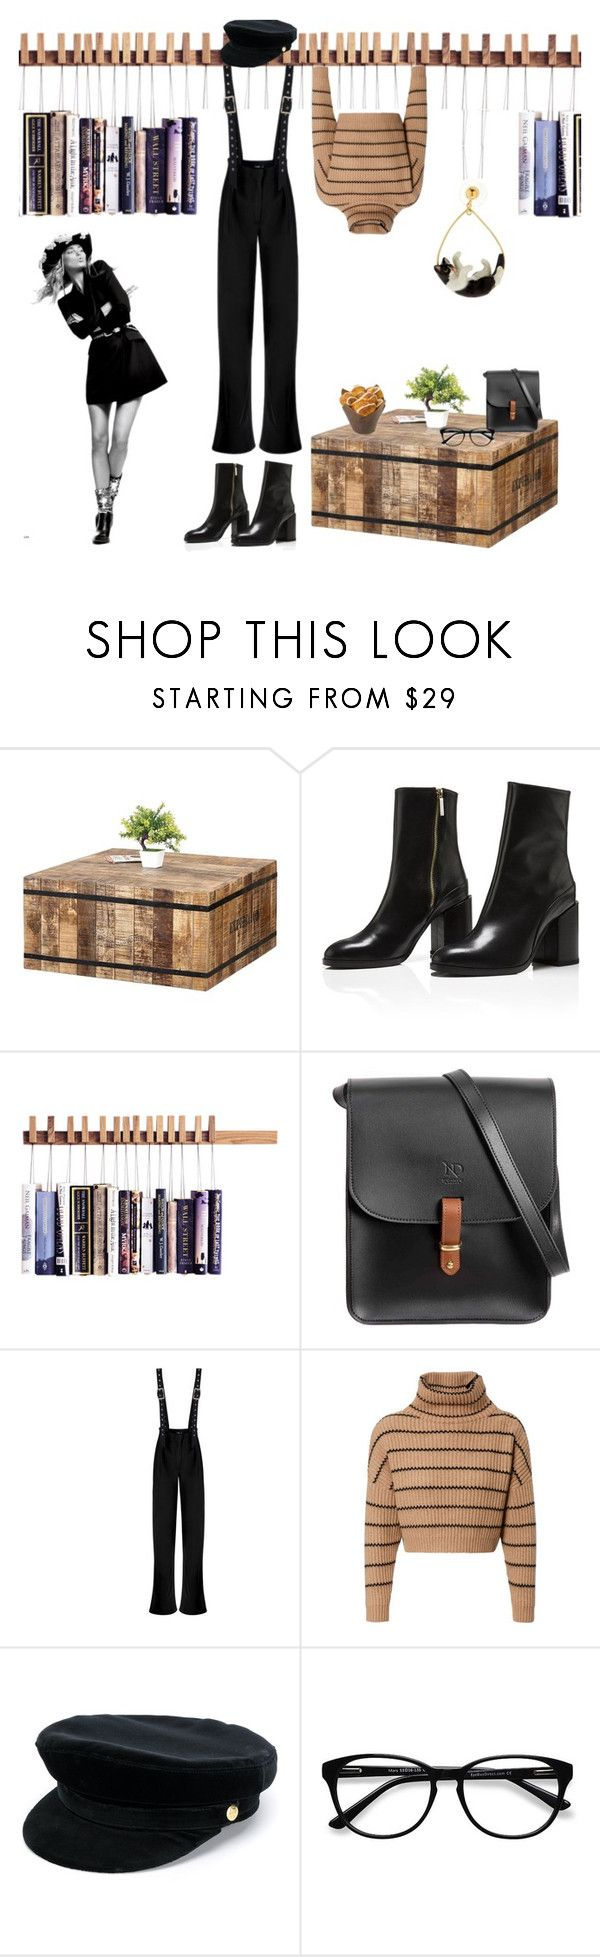 """Senza titolo #486"" by anna17682 ❤ liked on Polyvore featuring N'Damus, Brunello Cucinelli, Manokhi, EyeBuyDirect.com and Nach"